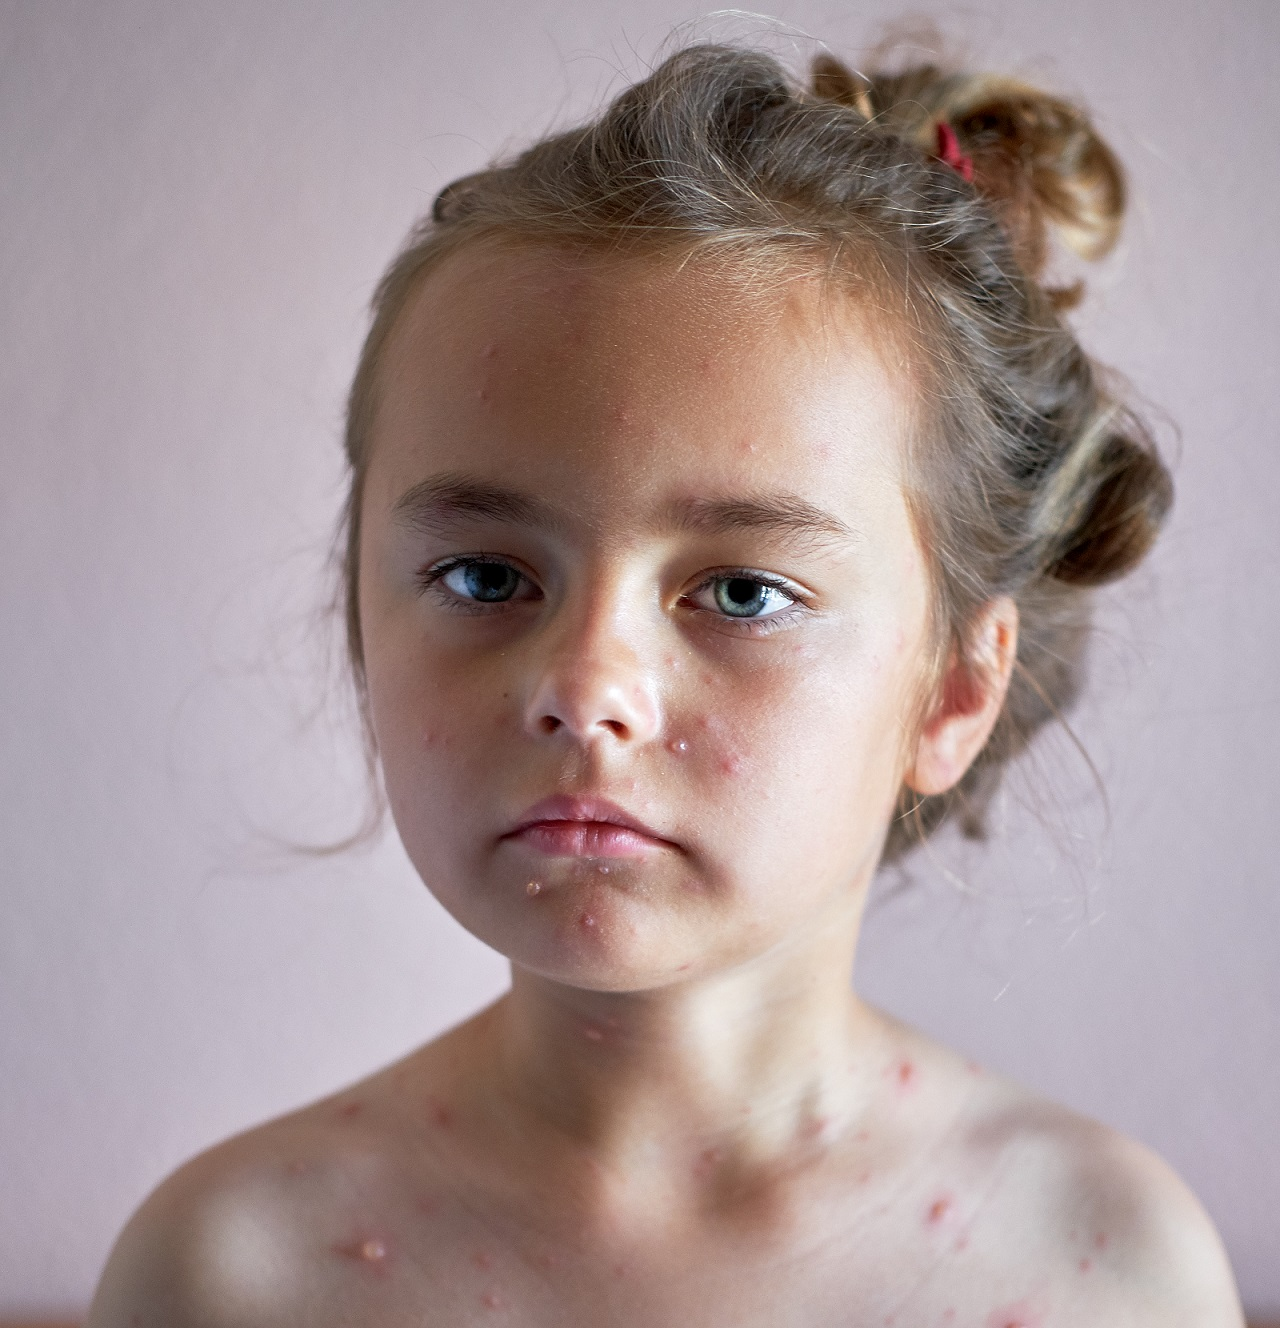 Little girl with chickenpox